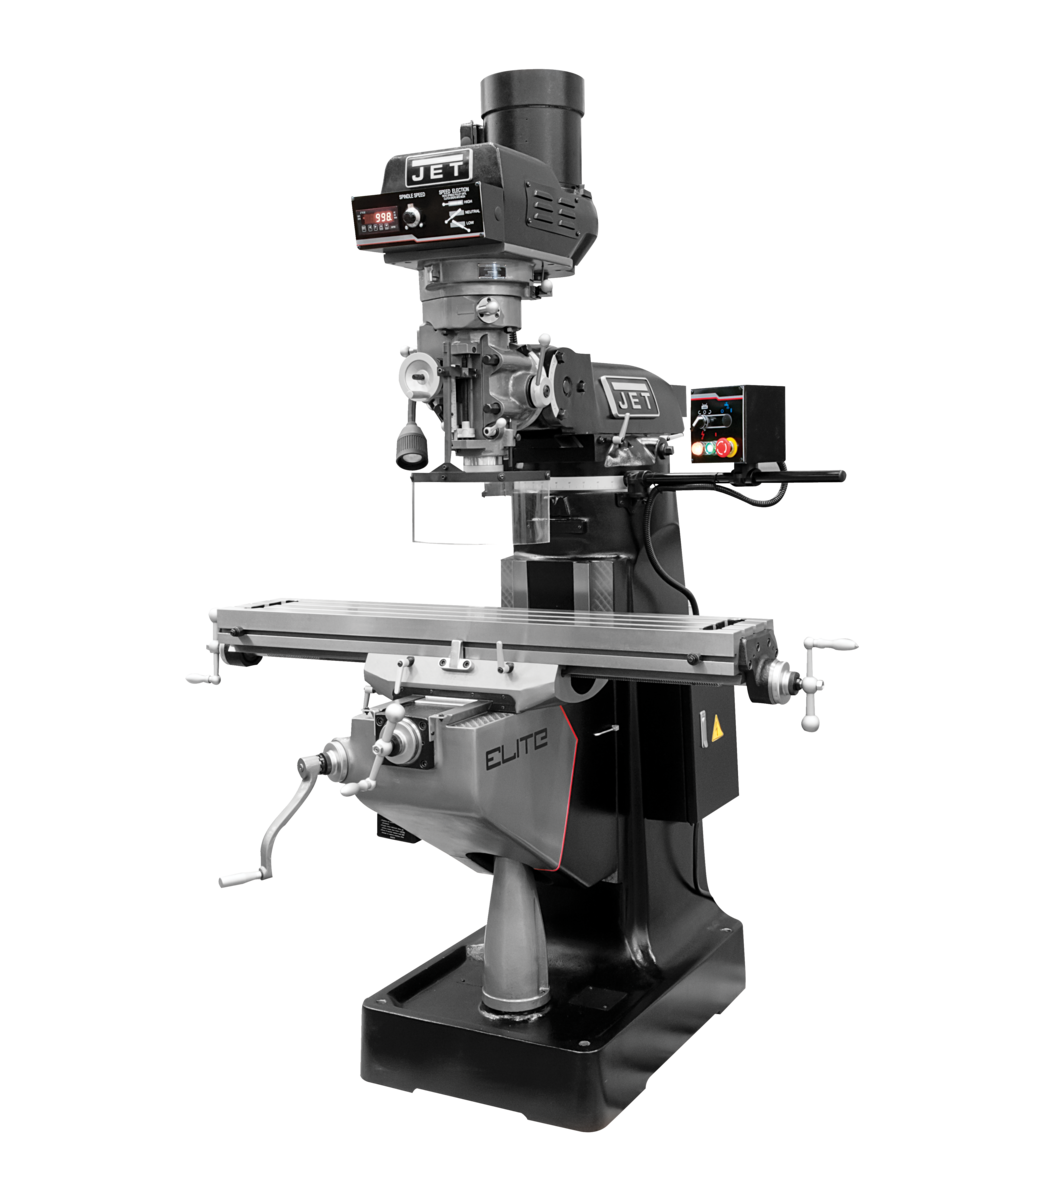 EVS-949 Mill with 2-Axis ACU-RITE 203 DRO and Servo X, Y, Z-Axis Powerfeeds and USA Air Powered Draw Bar